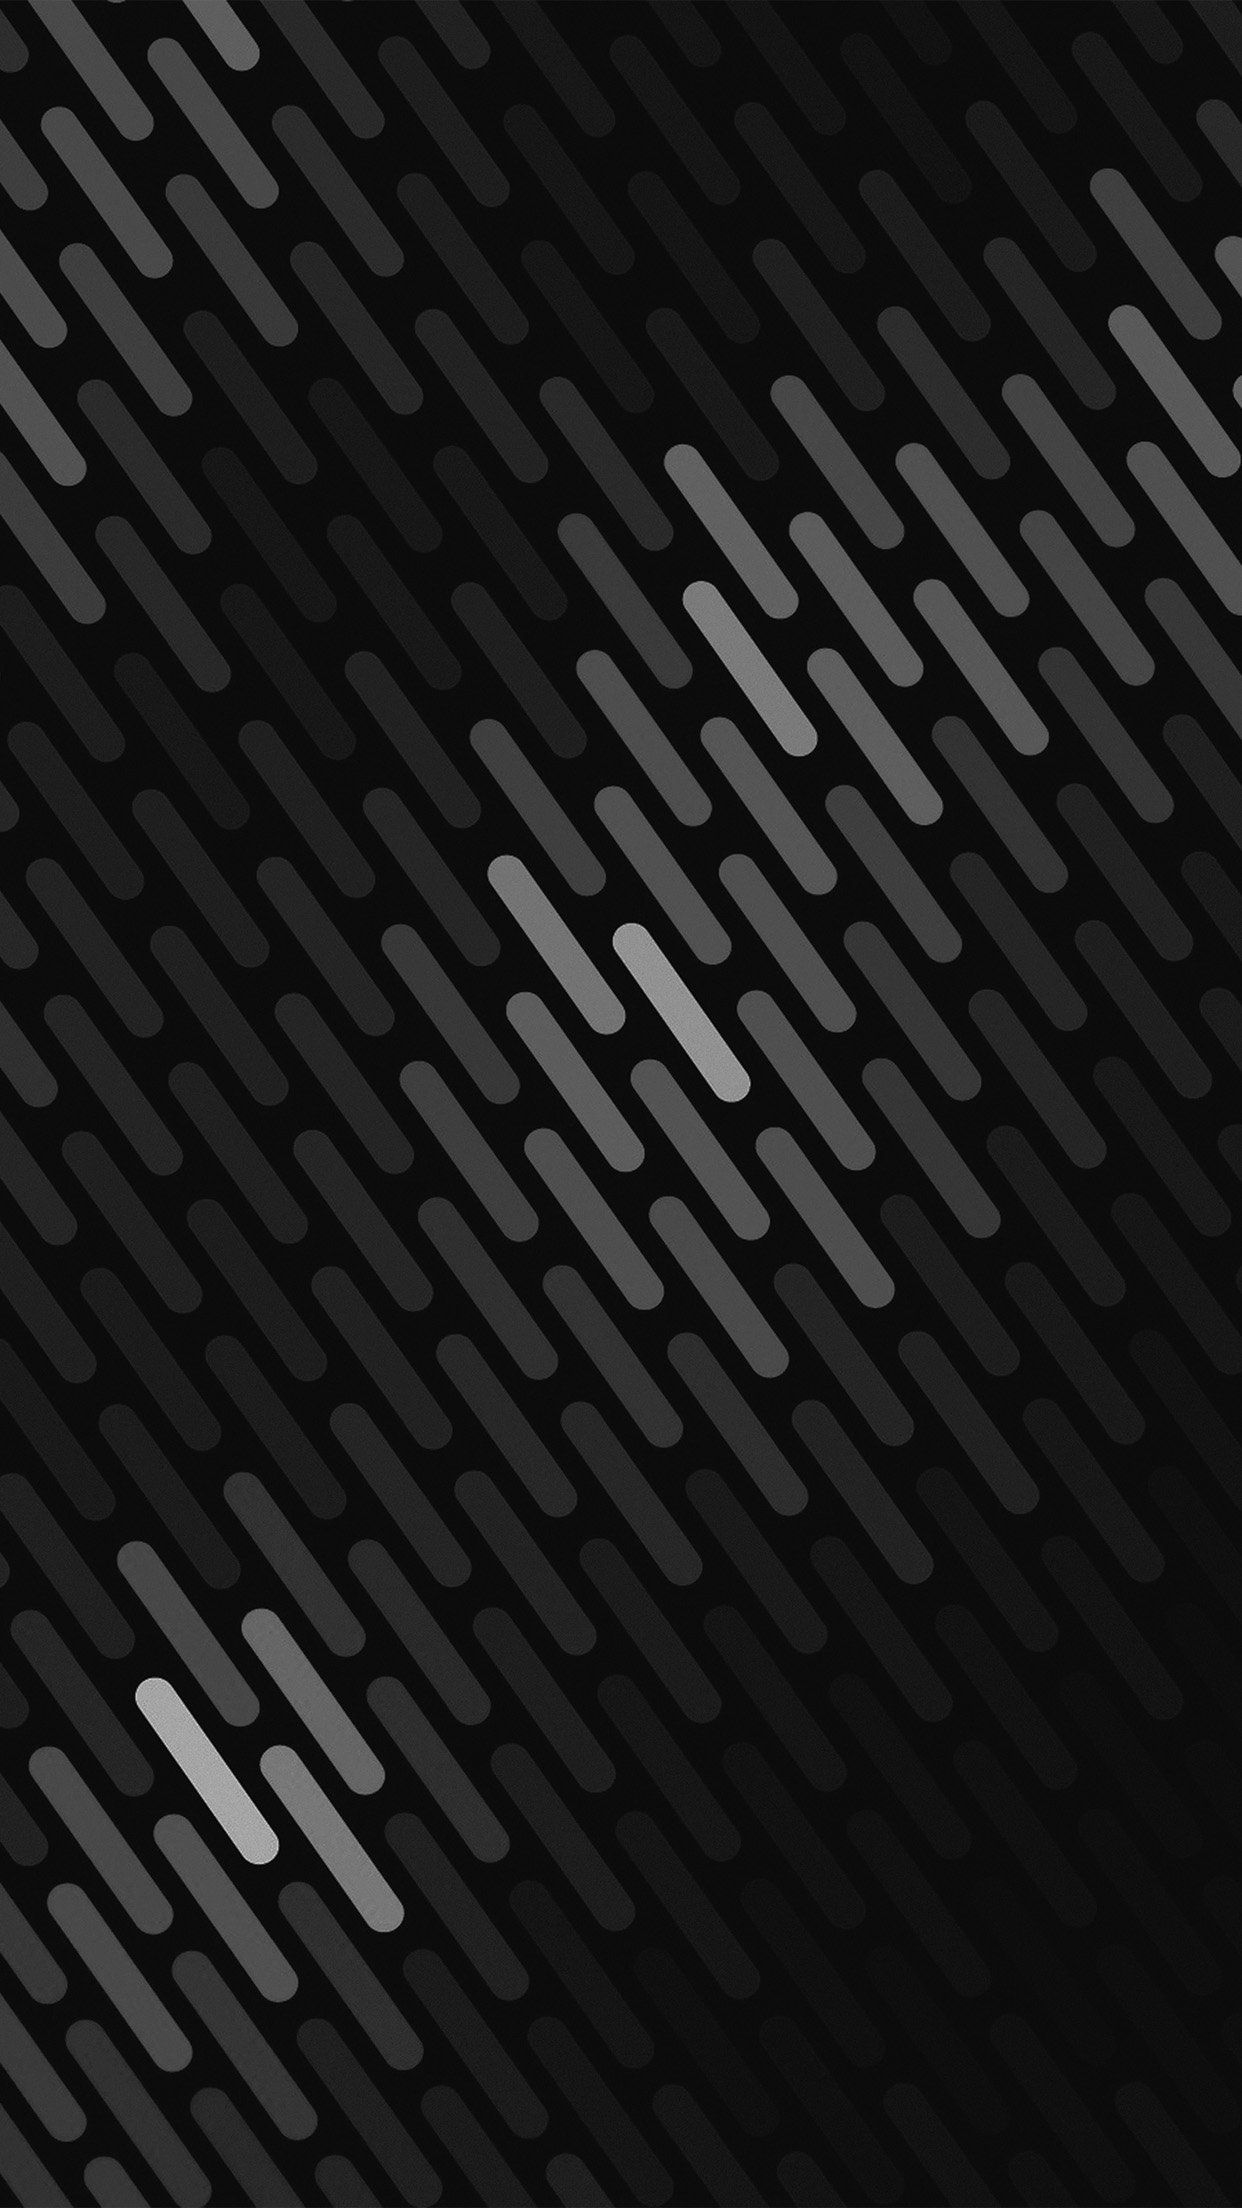 Black Abstract Iphone Wallpapers Top Free Black Abstract